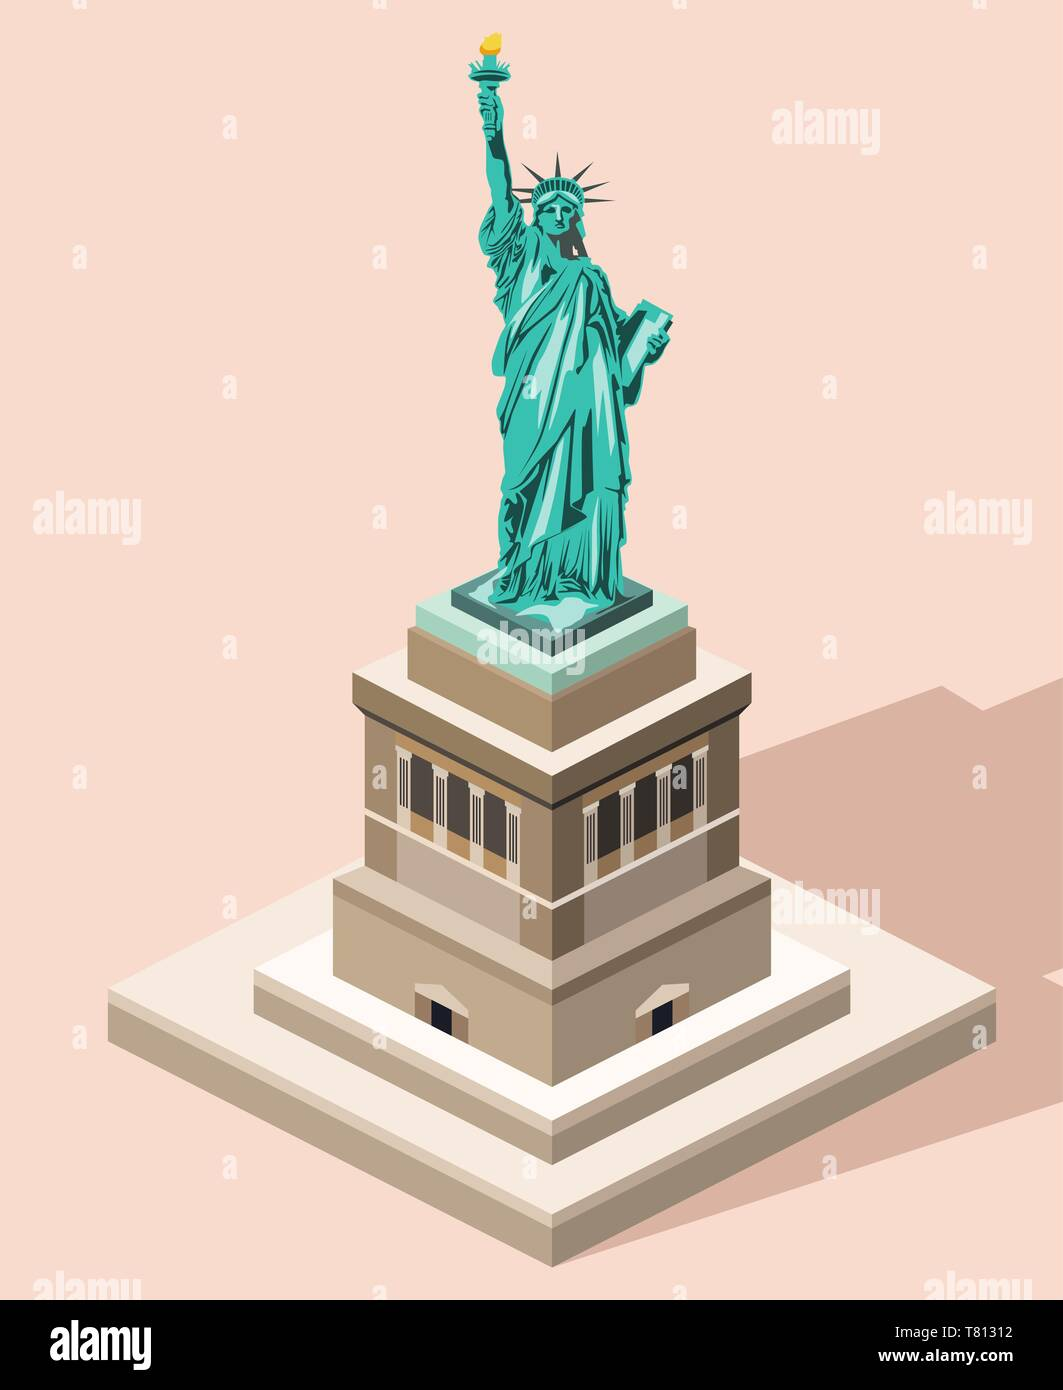 vector 3d isometric icon of Statue of Liberty with flat style colored background and shadow Stock Vector